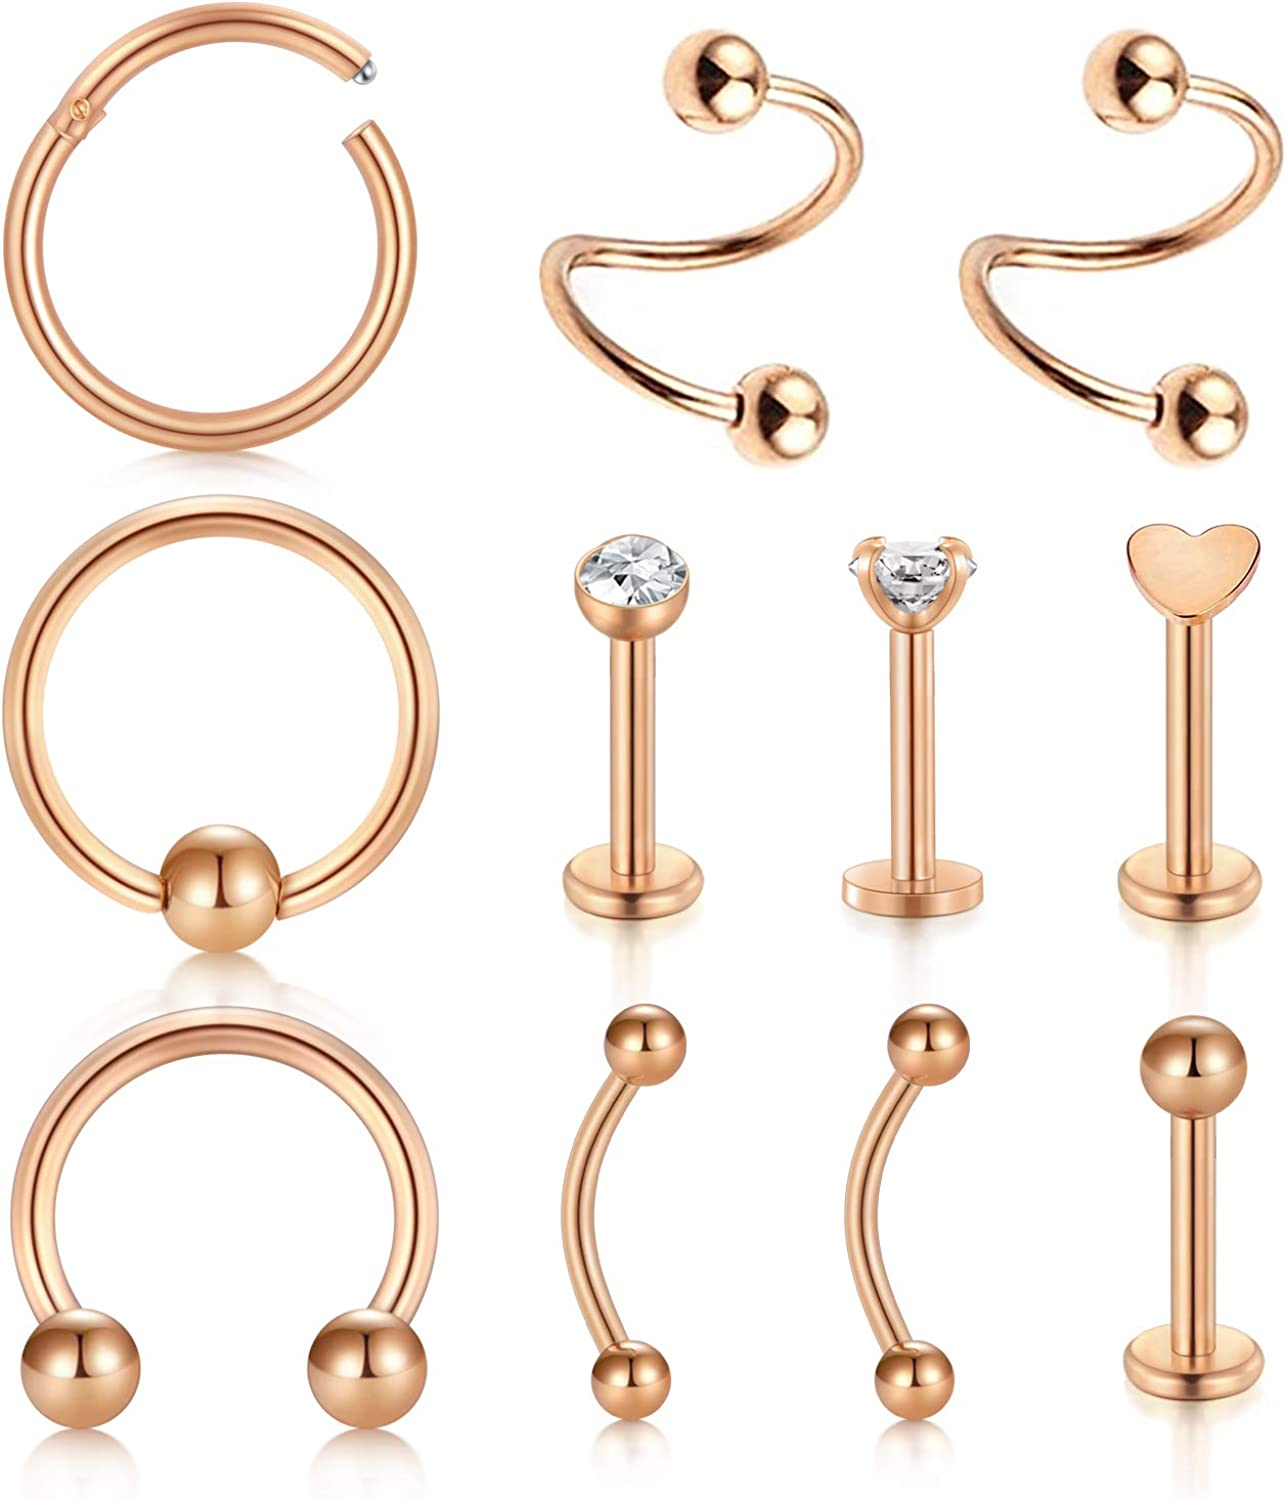 D.Bella 11pcs 16G Nose Rings Stainless Steel Tragus Helix Cartilage Daith Rook Earrings Spiral Twisted Barbell Eyebrow Ring Piercing Jewelry